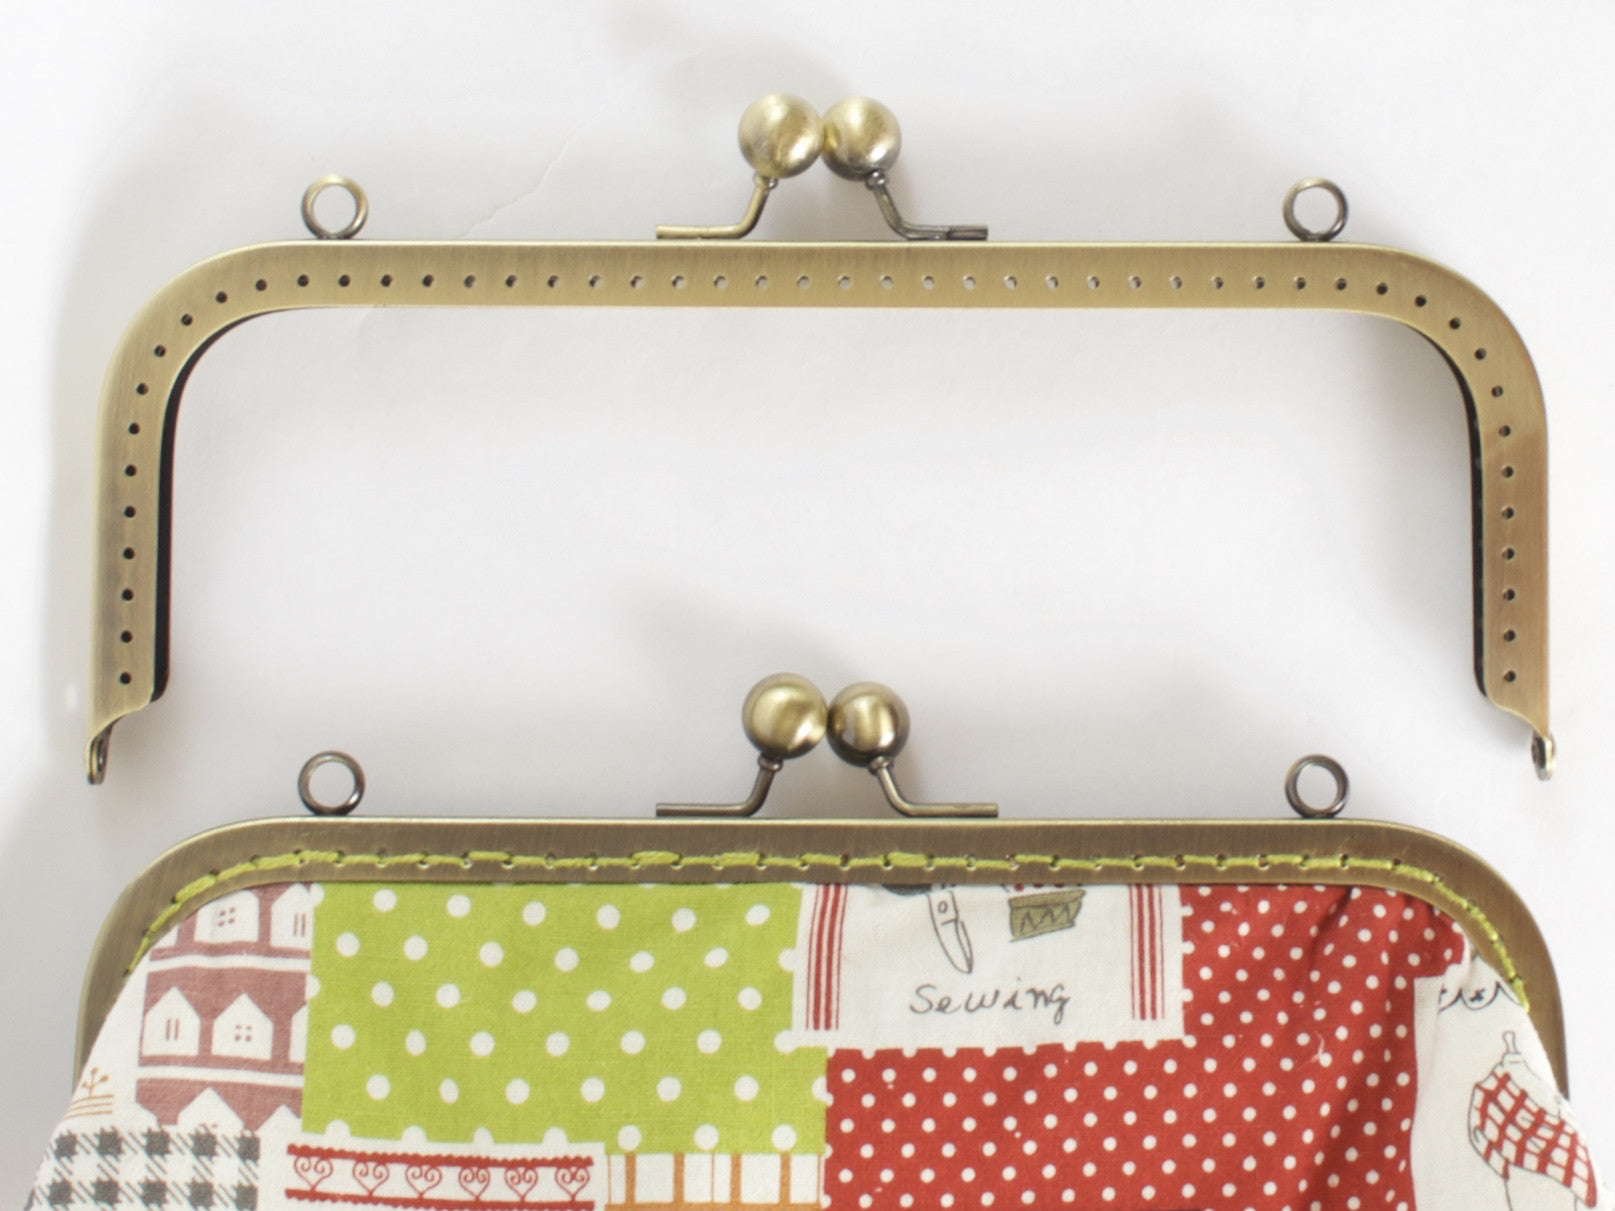 ... clasp frame bag · sew in style purse frame ... 5bfbee180f41c